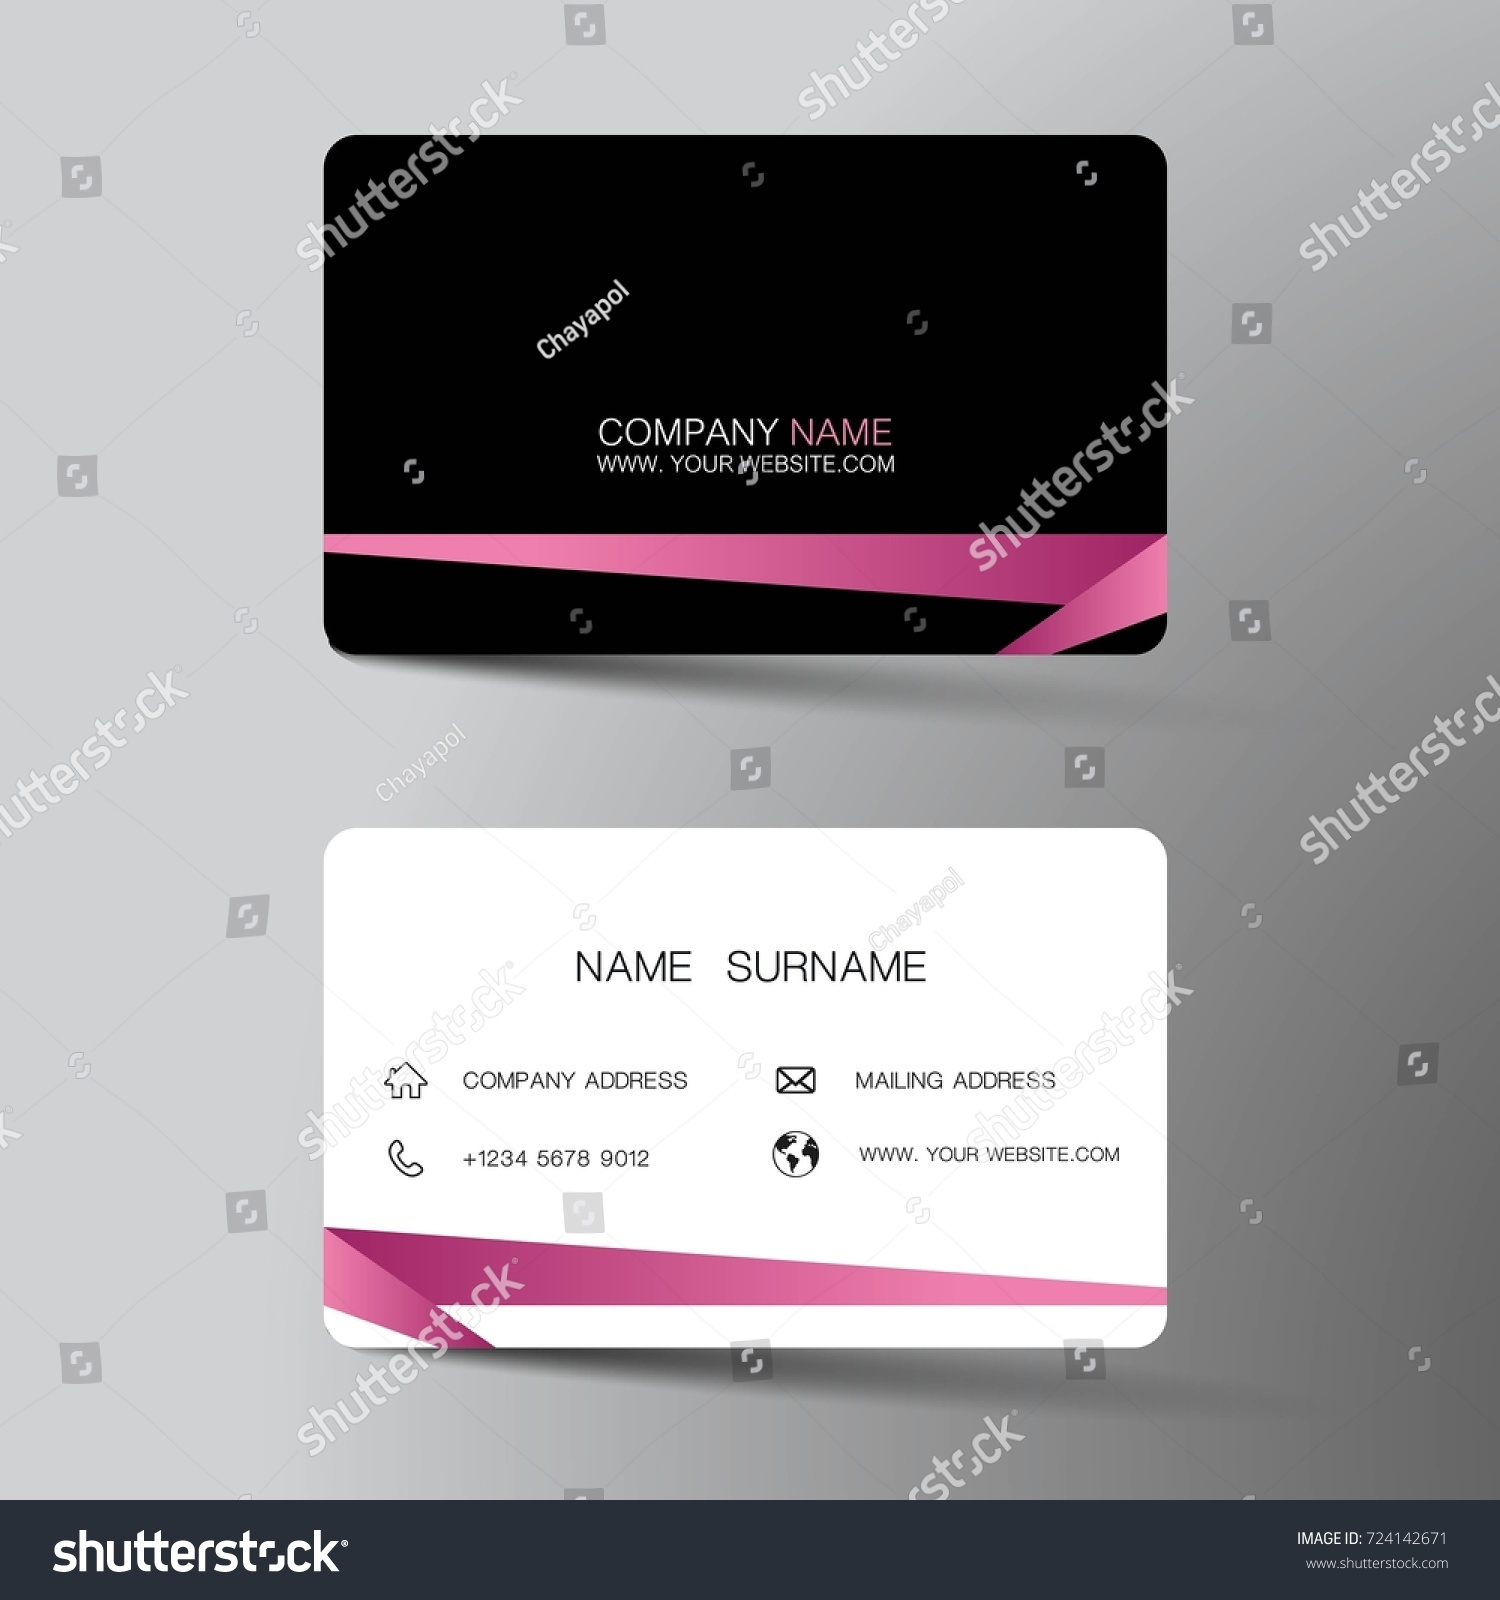 Modern Business Card Template Design Pink Stock Vector 724142671 ...